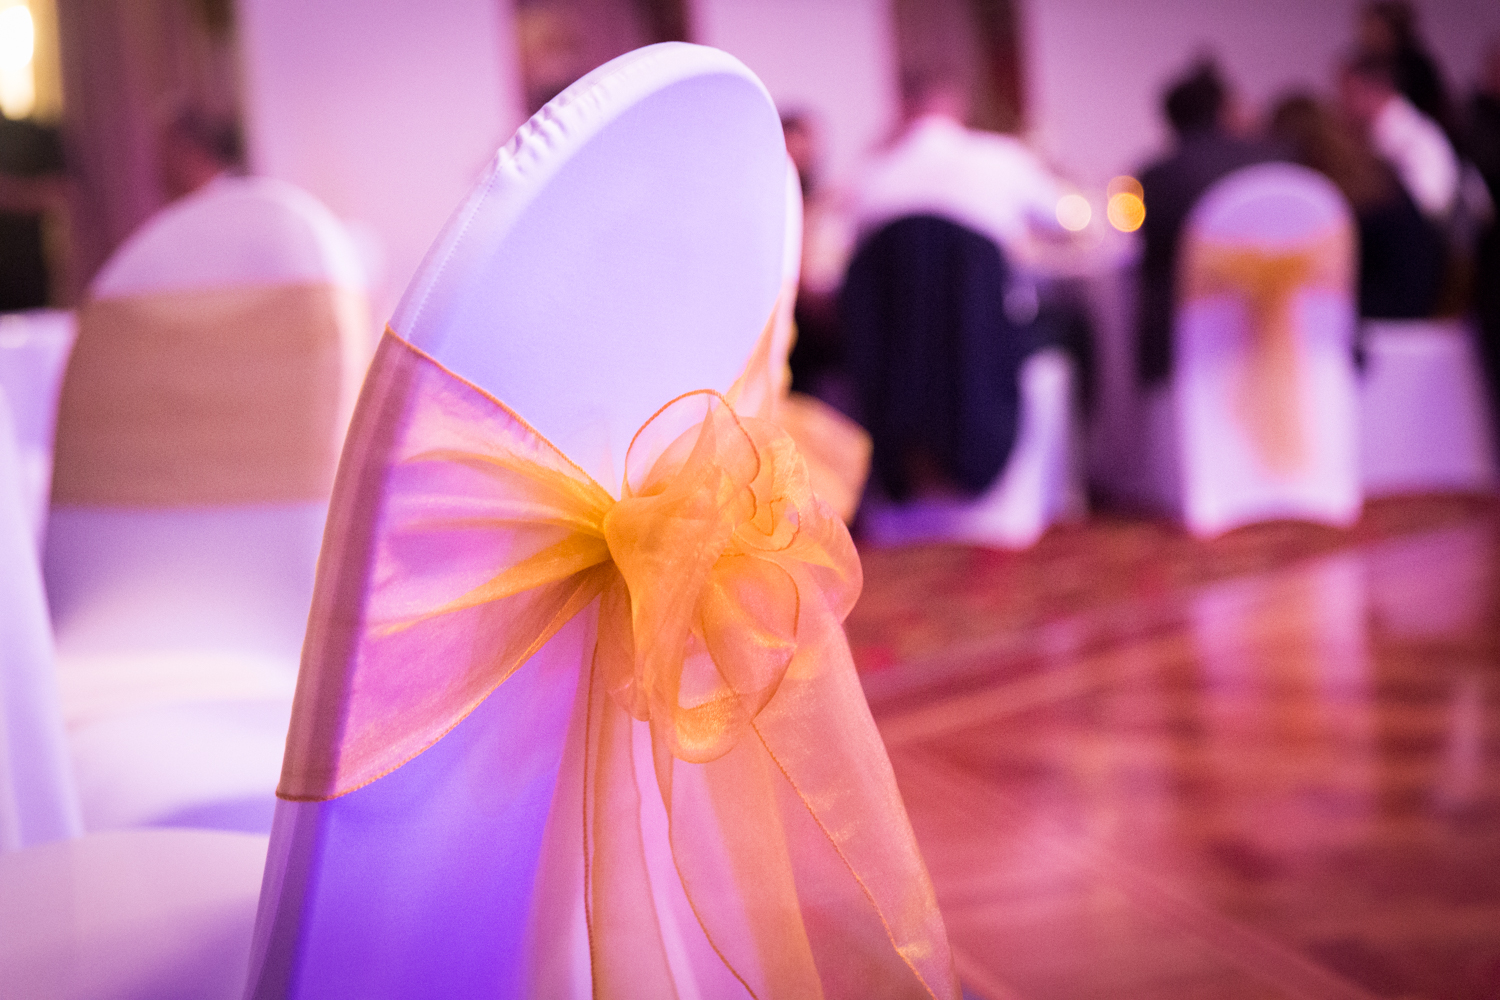 Four_Daisies_wedding_photography_melbourne_yarra_valley_danenong_ranges001-4.jpg